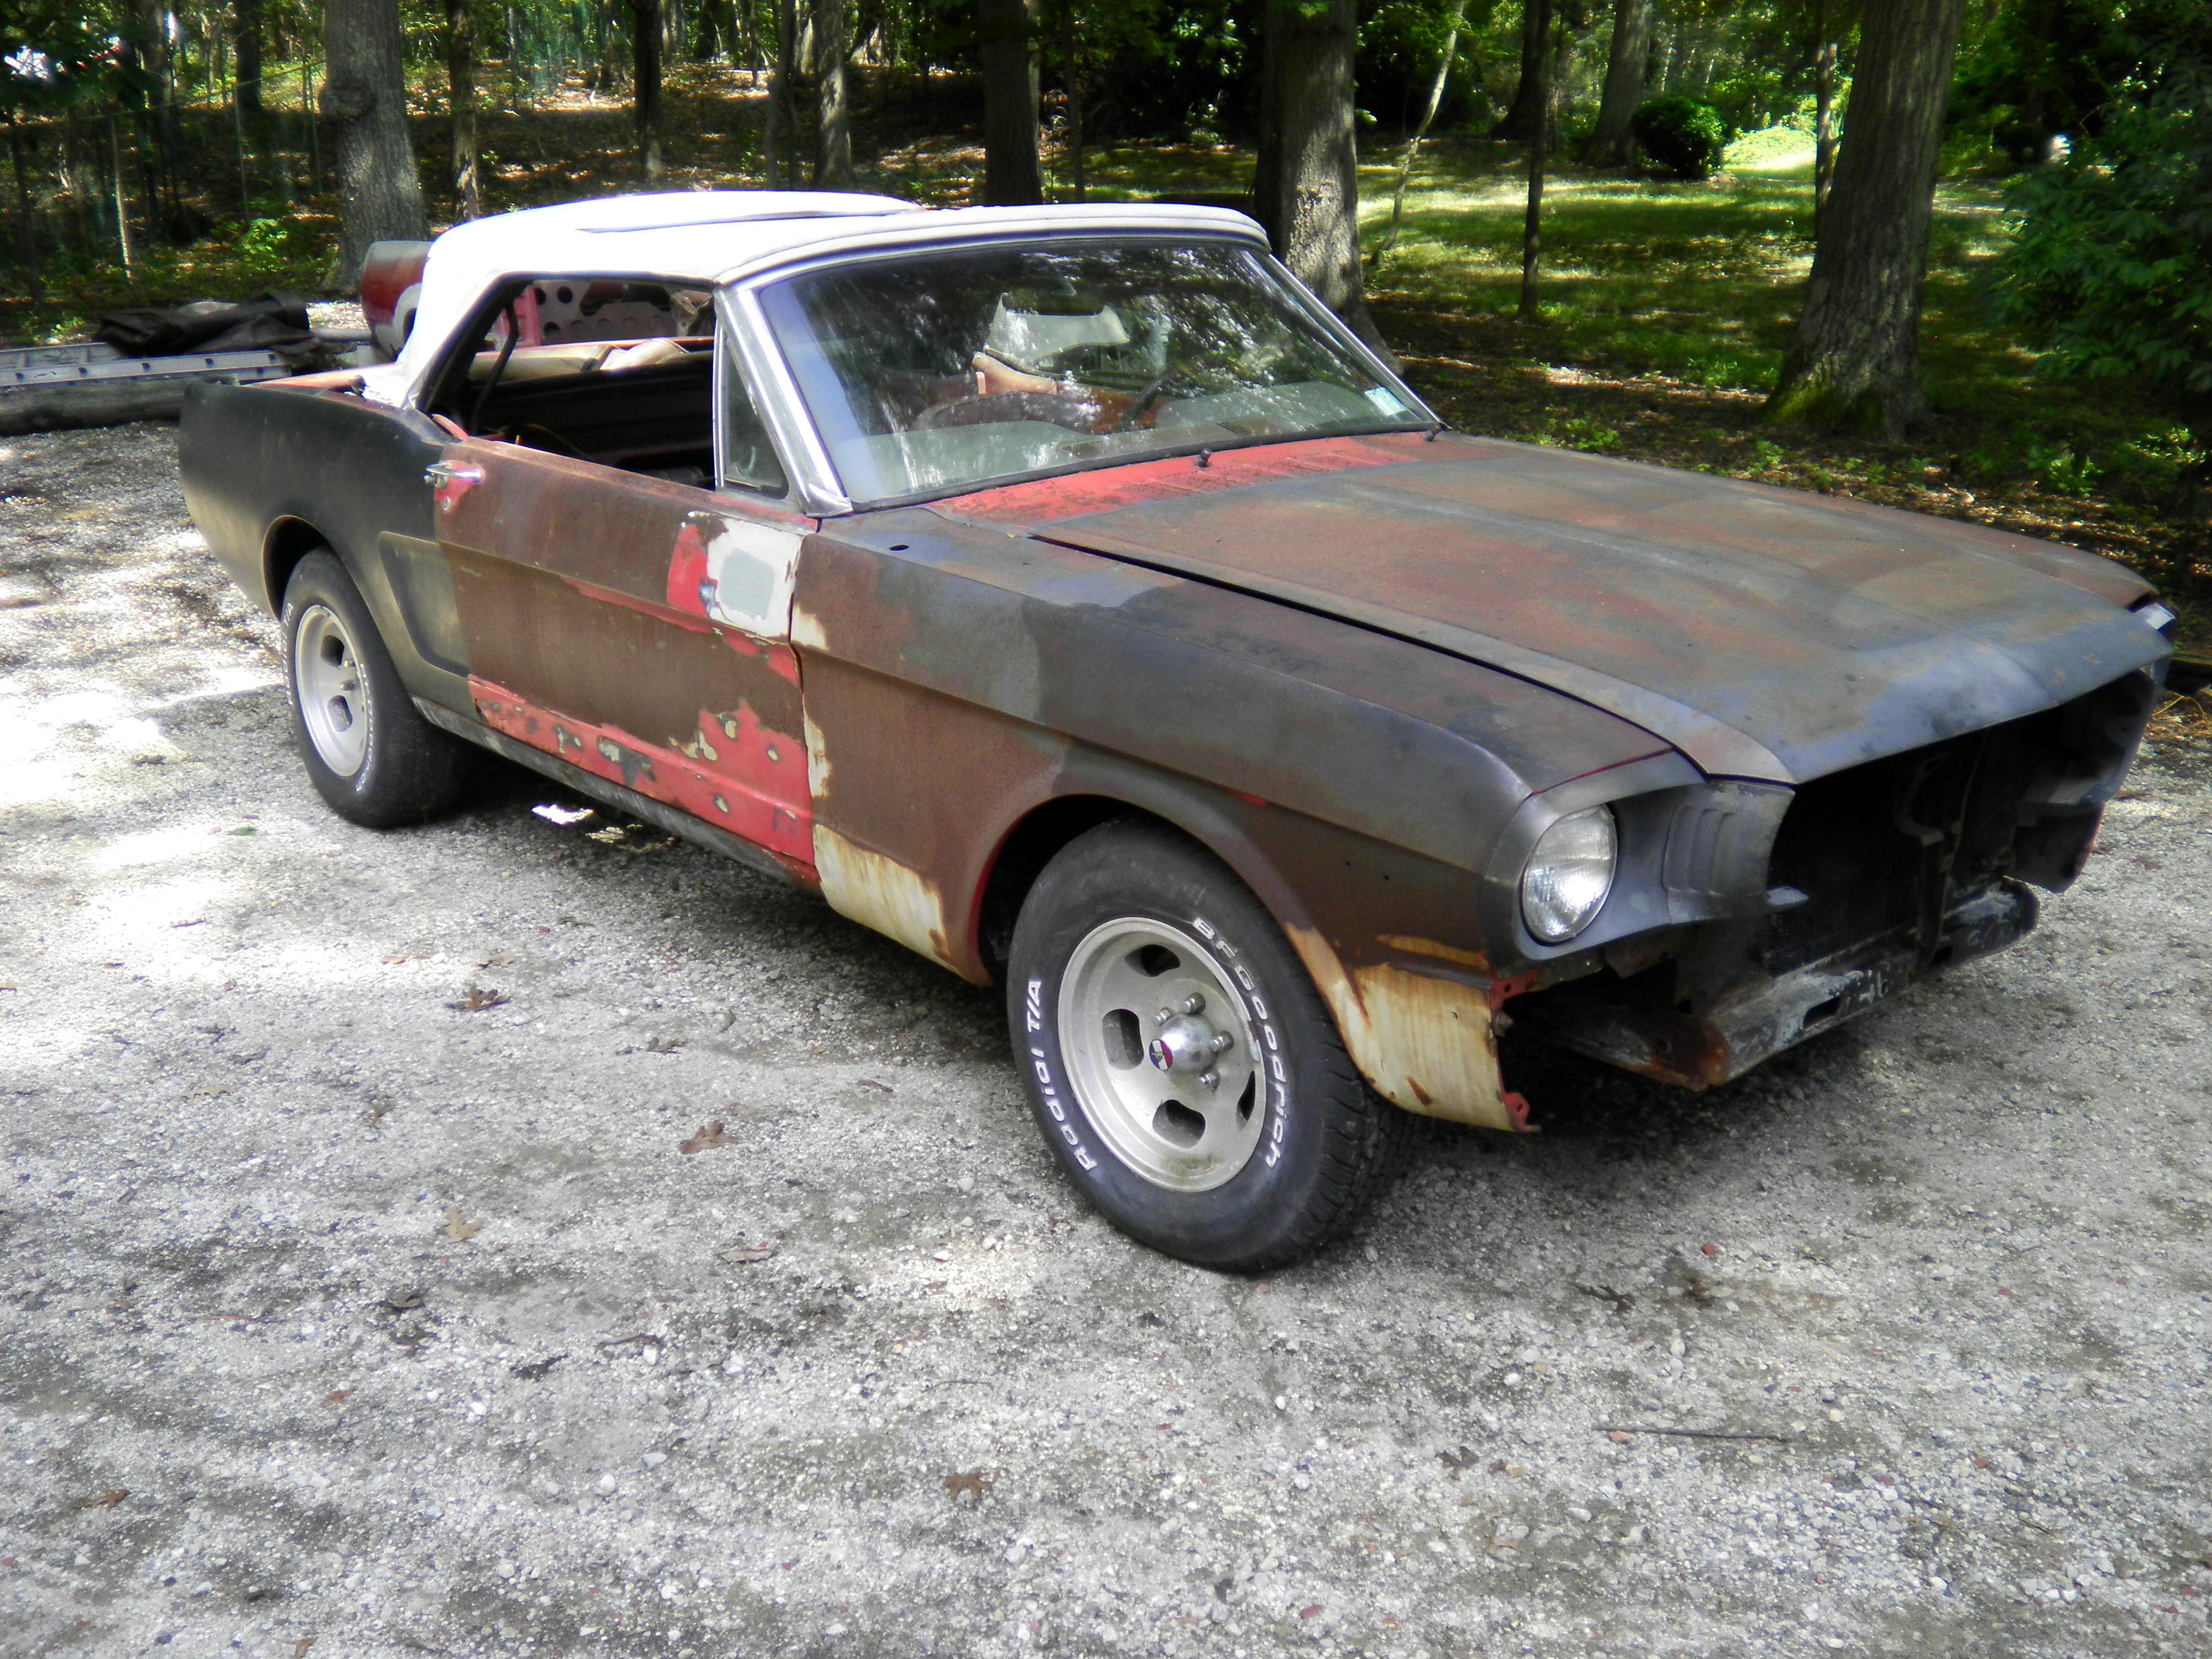 71steed 1965 Ford Mustang